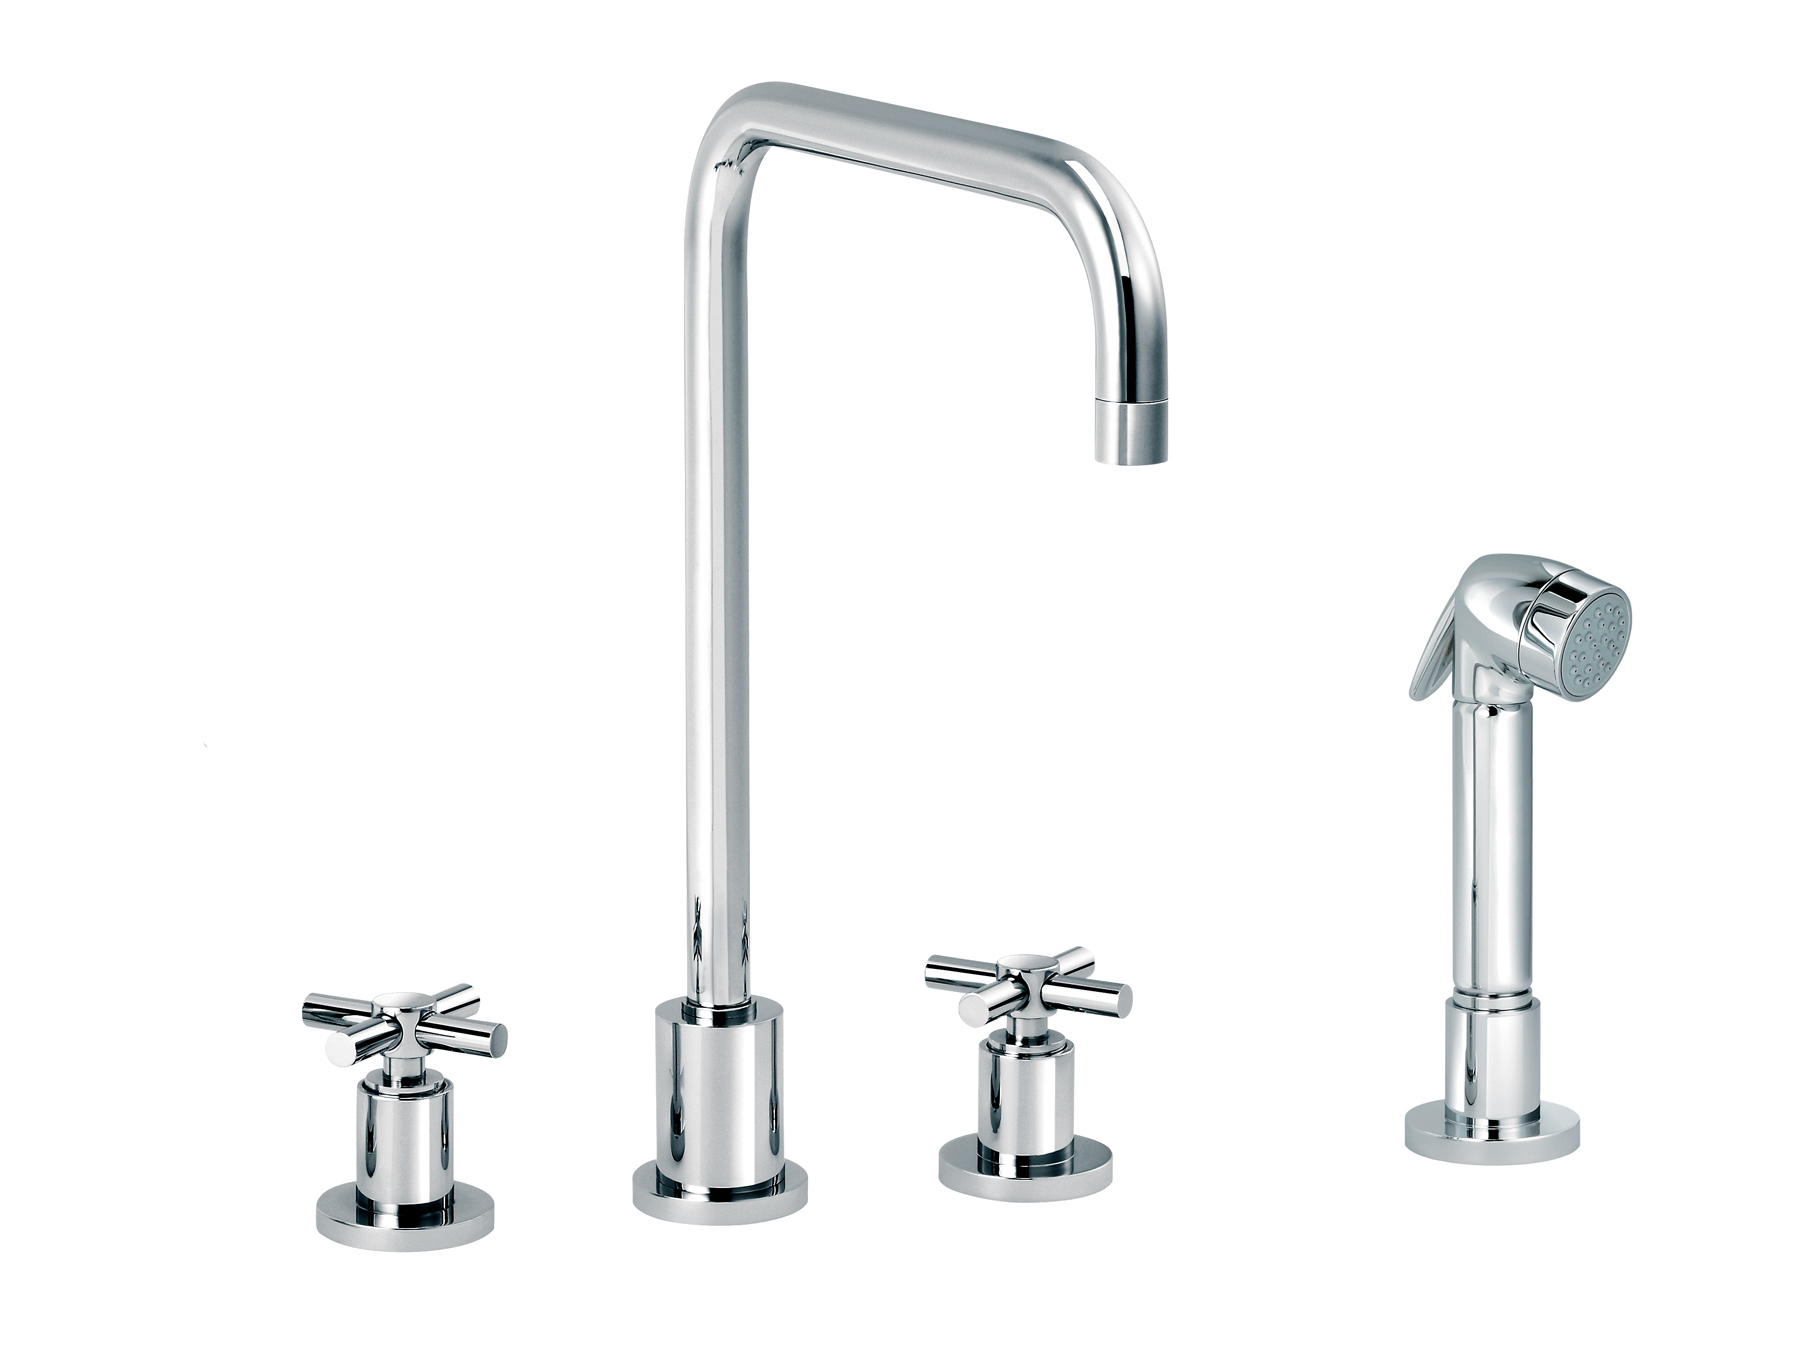 3-hole kitchen mixer, handshower, spout in U 4032.--.29